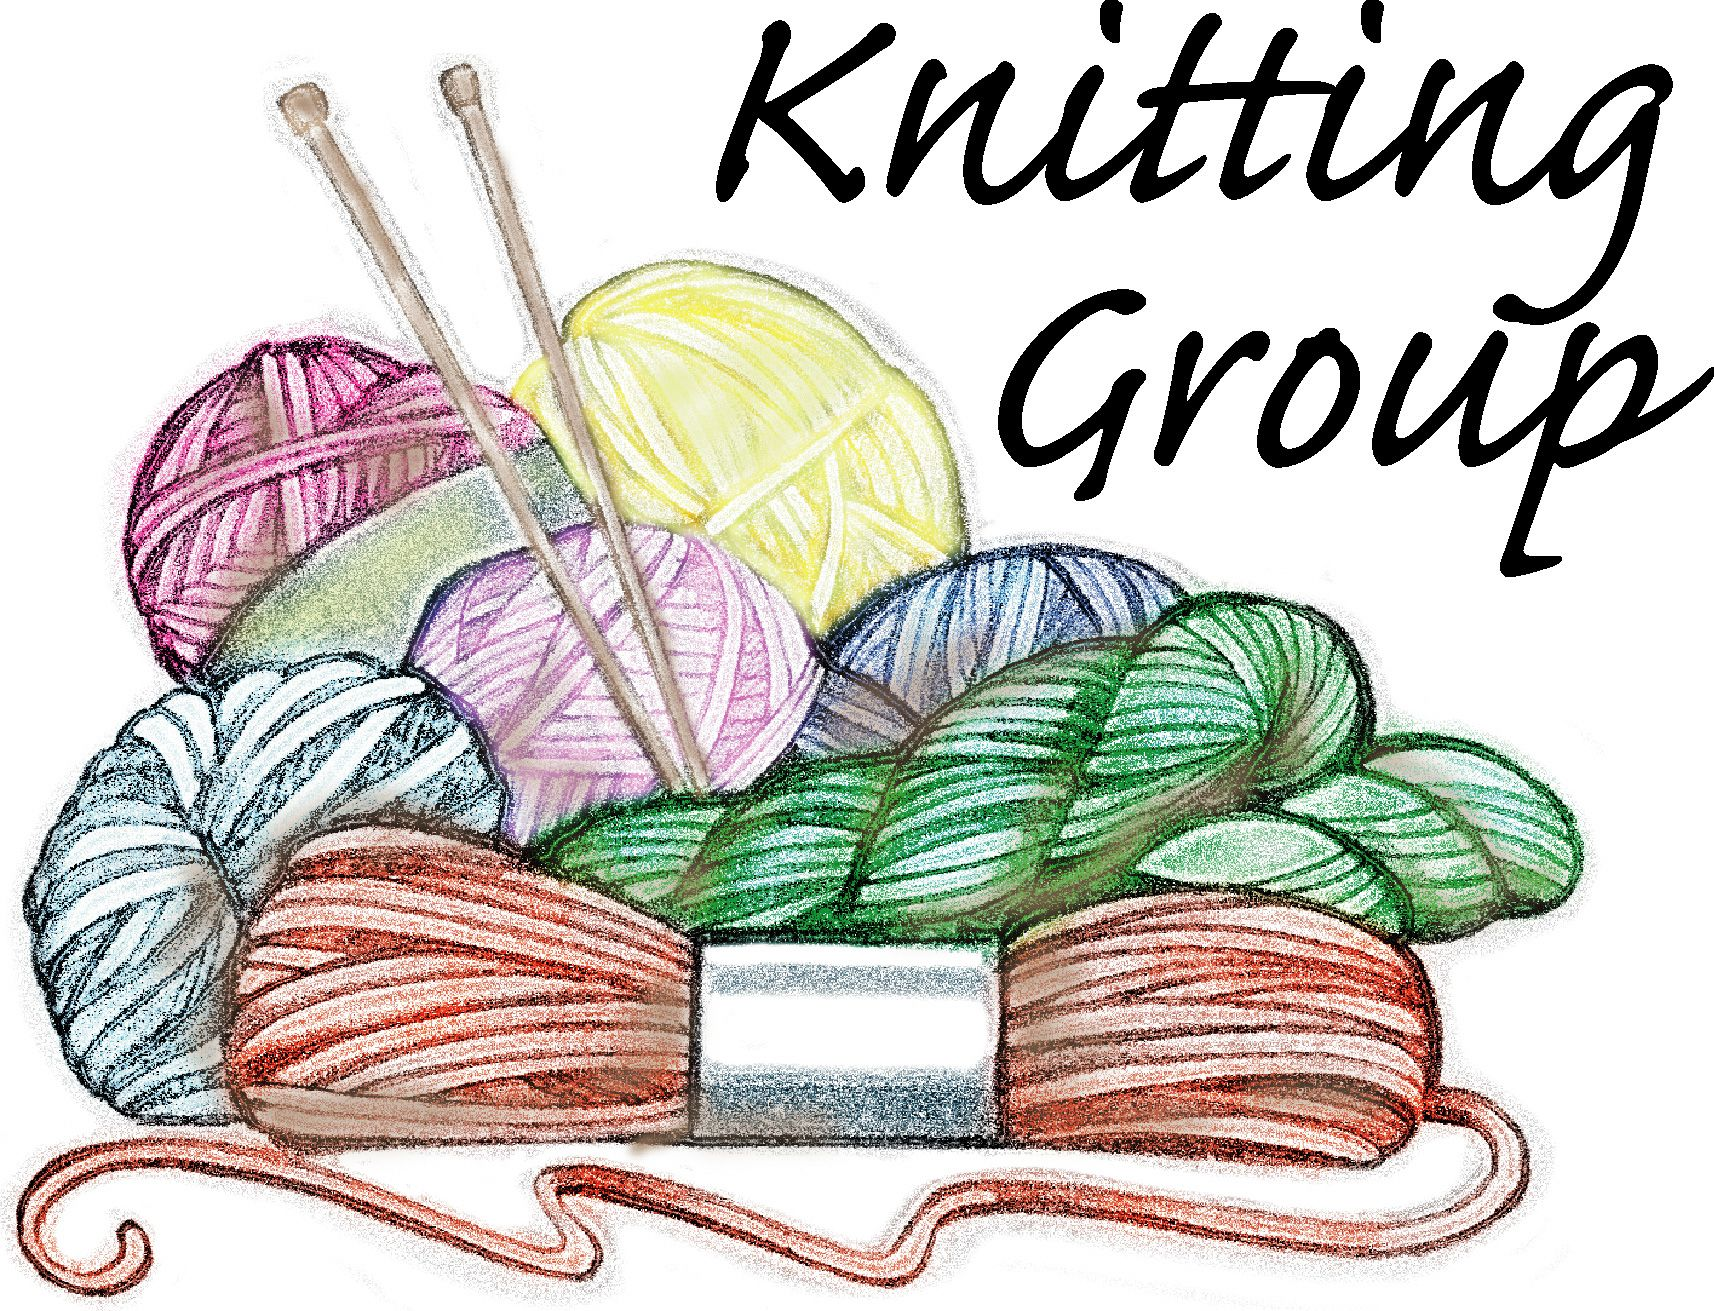 Knitting Images Free Clip Art : Clip art women knitting or crocheting the